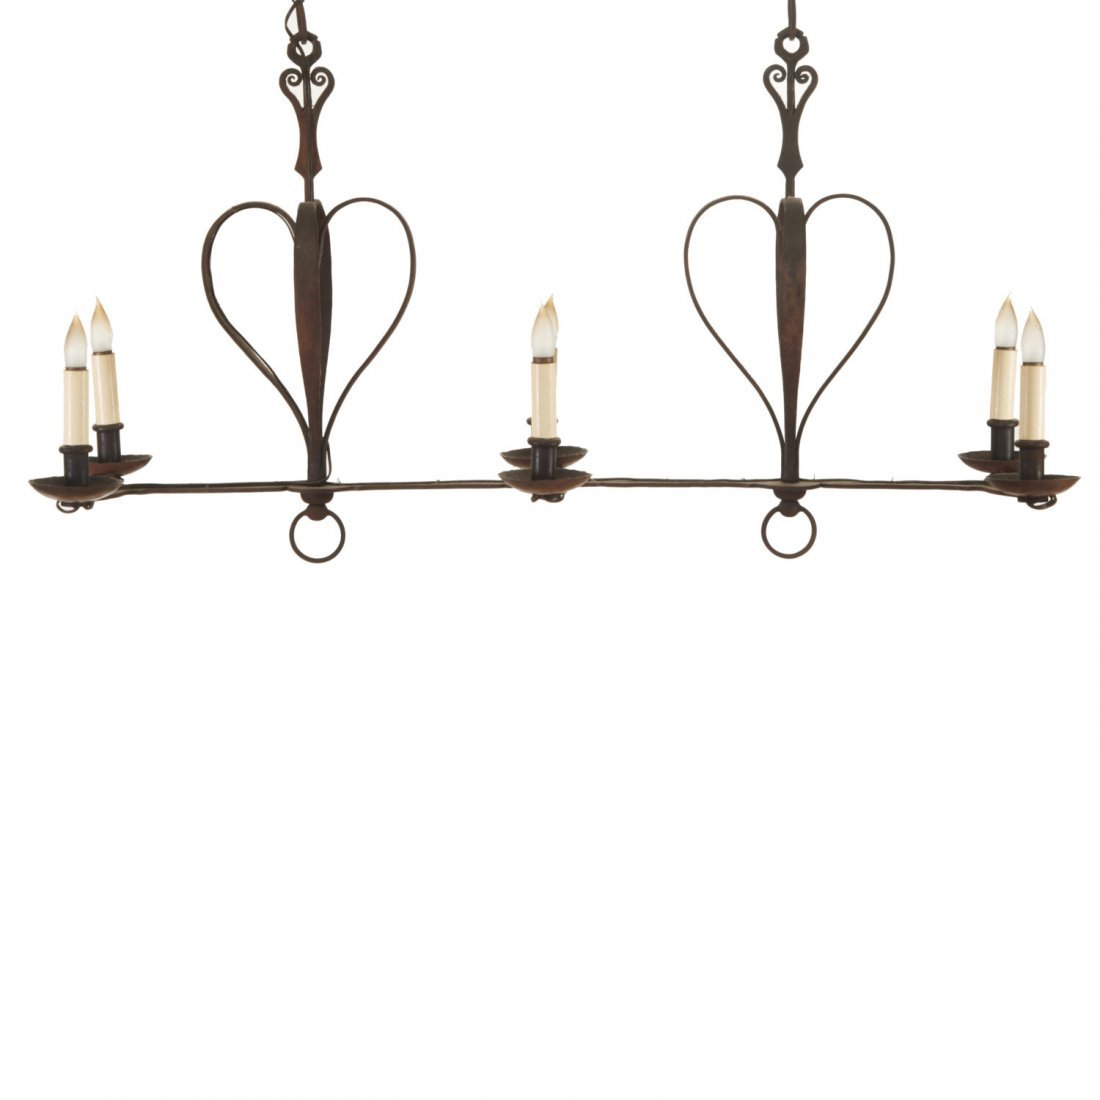 French Provincial style wrought iron chandelier